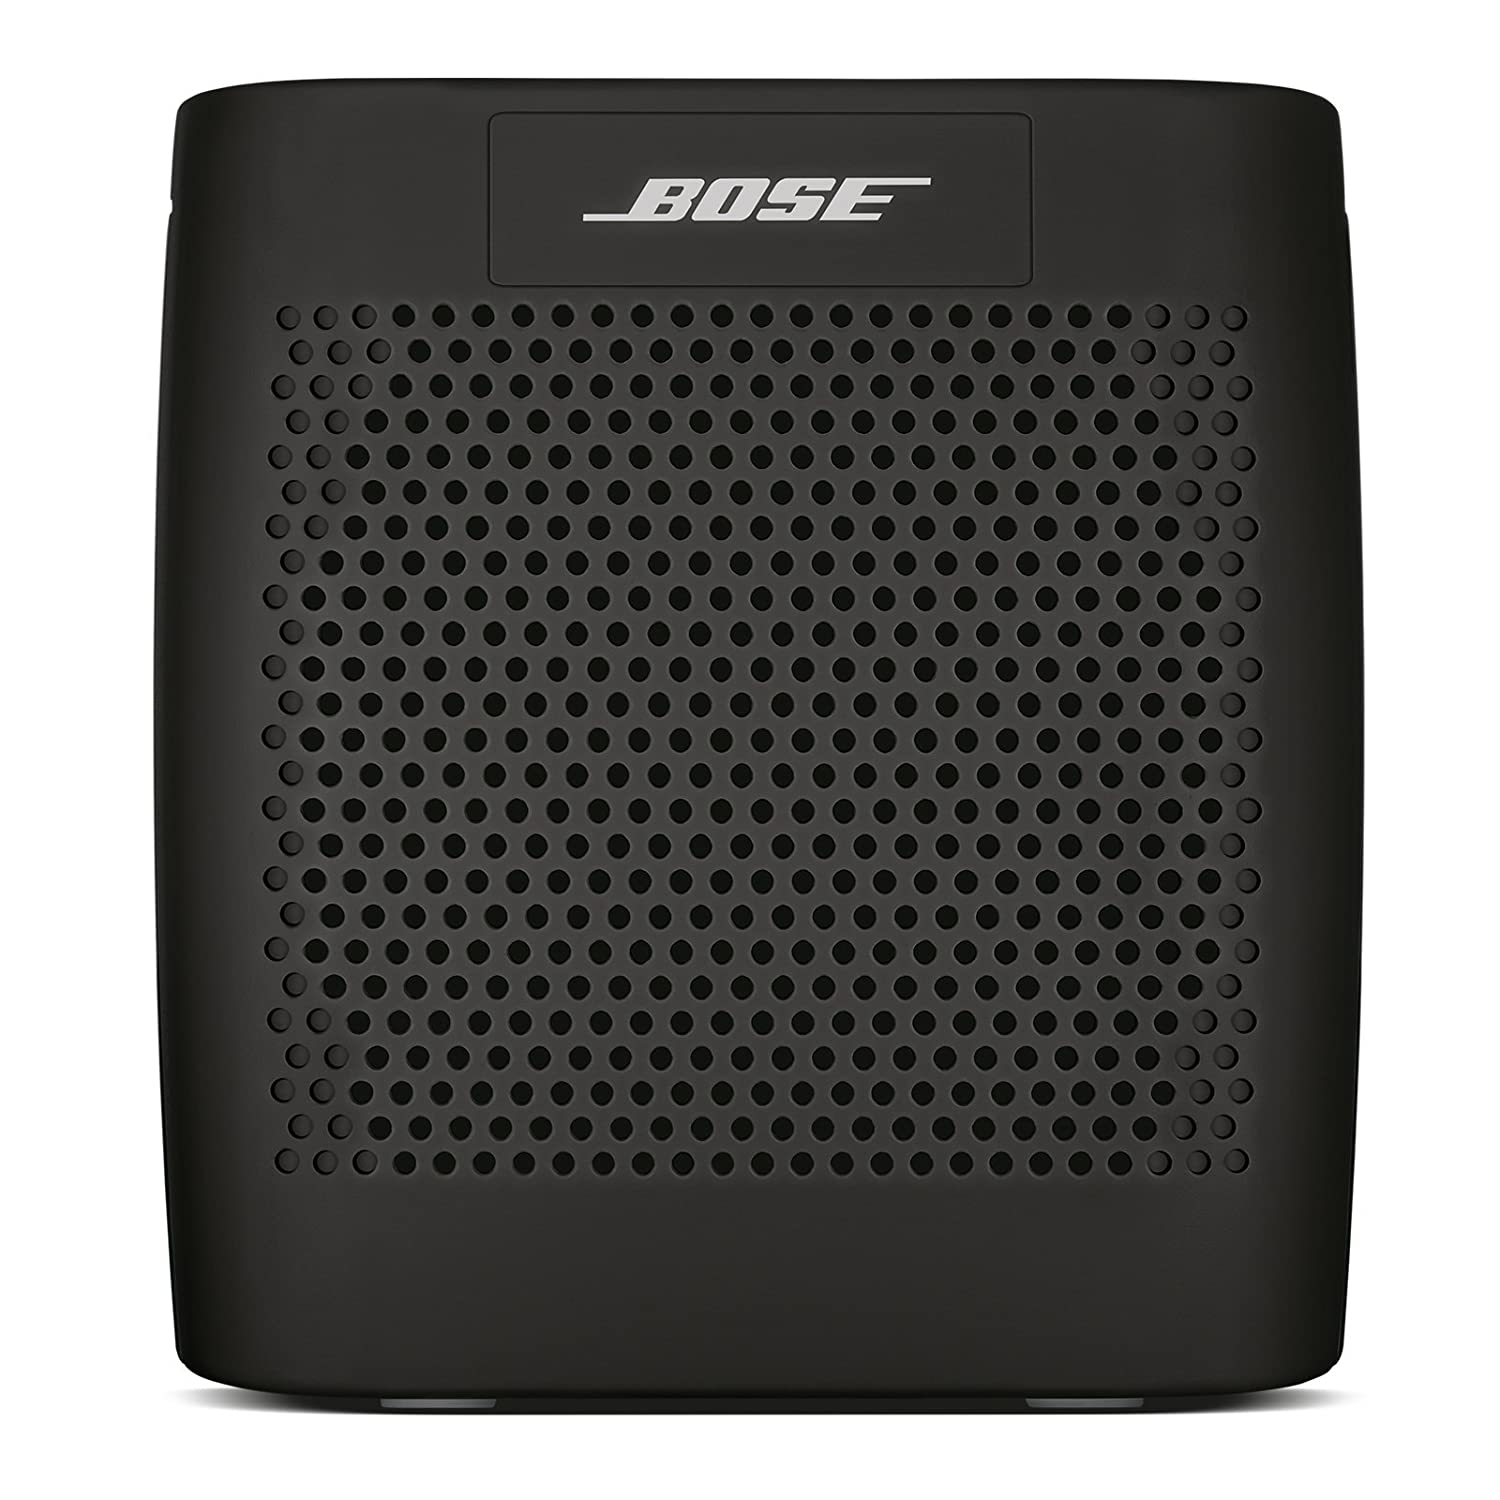 Bose SoundLink Color Wireless Bluetooth Speaker Black Price Buy Bose SoundLink Color Wireless Bluetooth Speaker Black line in India Amazon